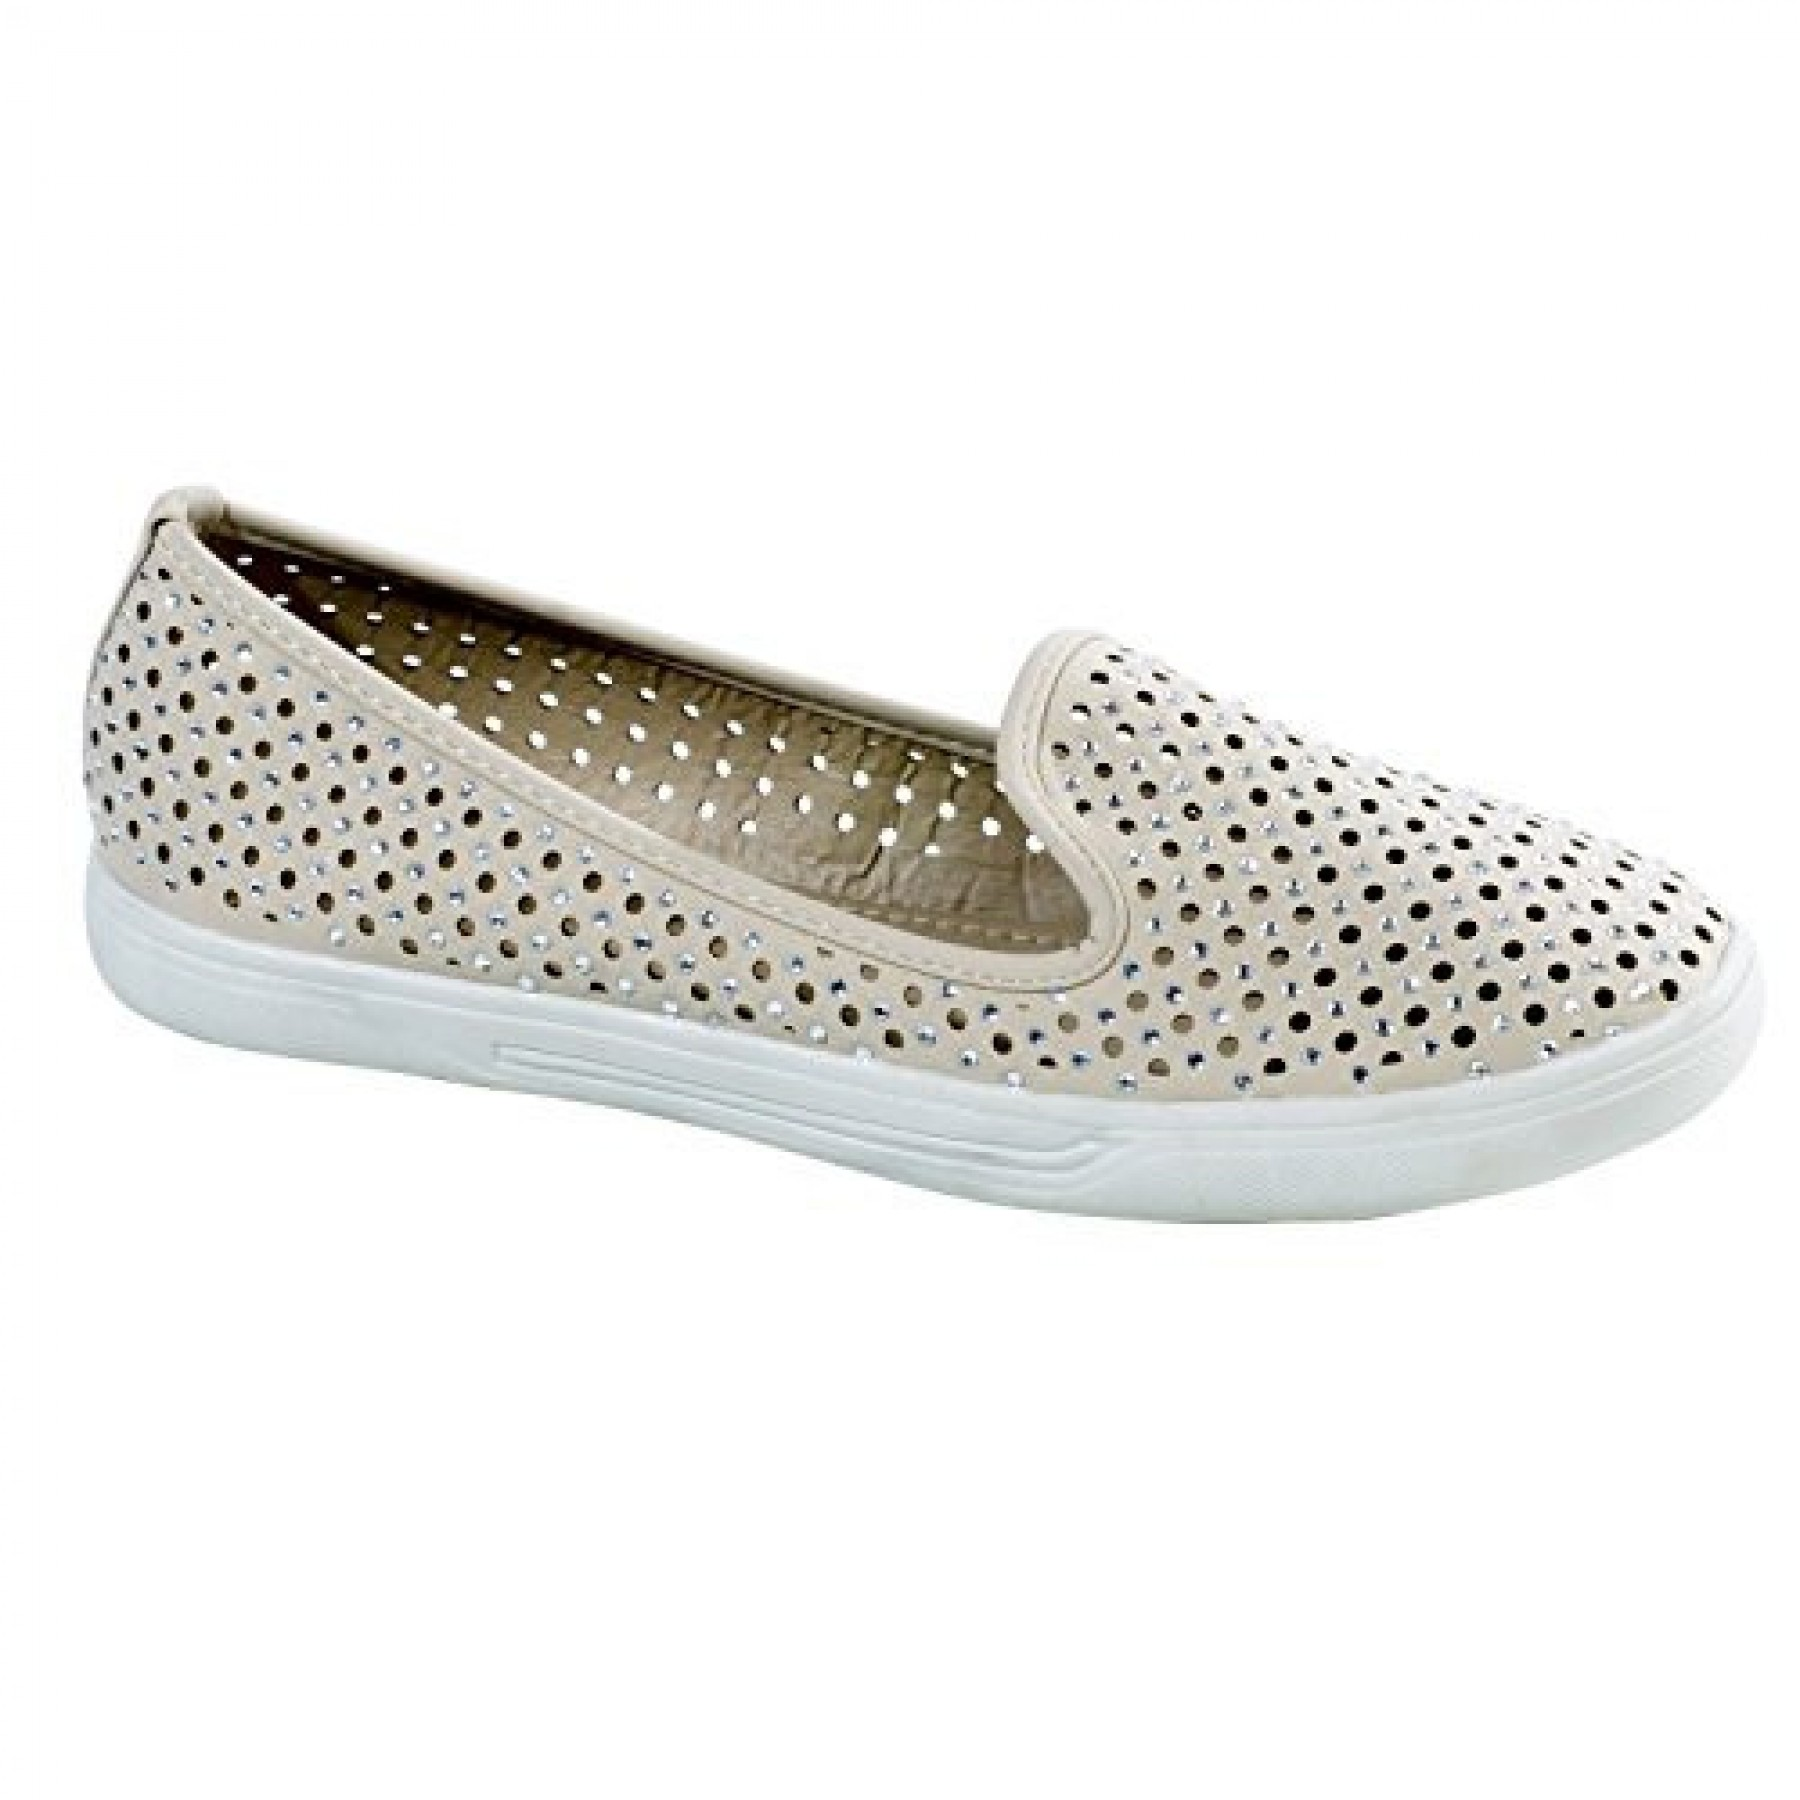 Women's Beige Inkaa Manmade Flats with Jeweled Mesh Upper